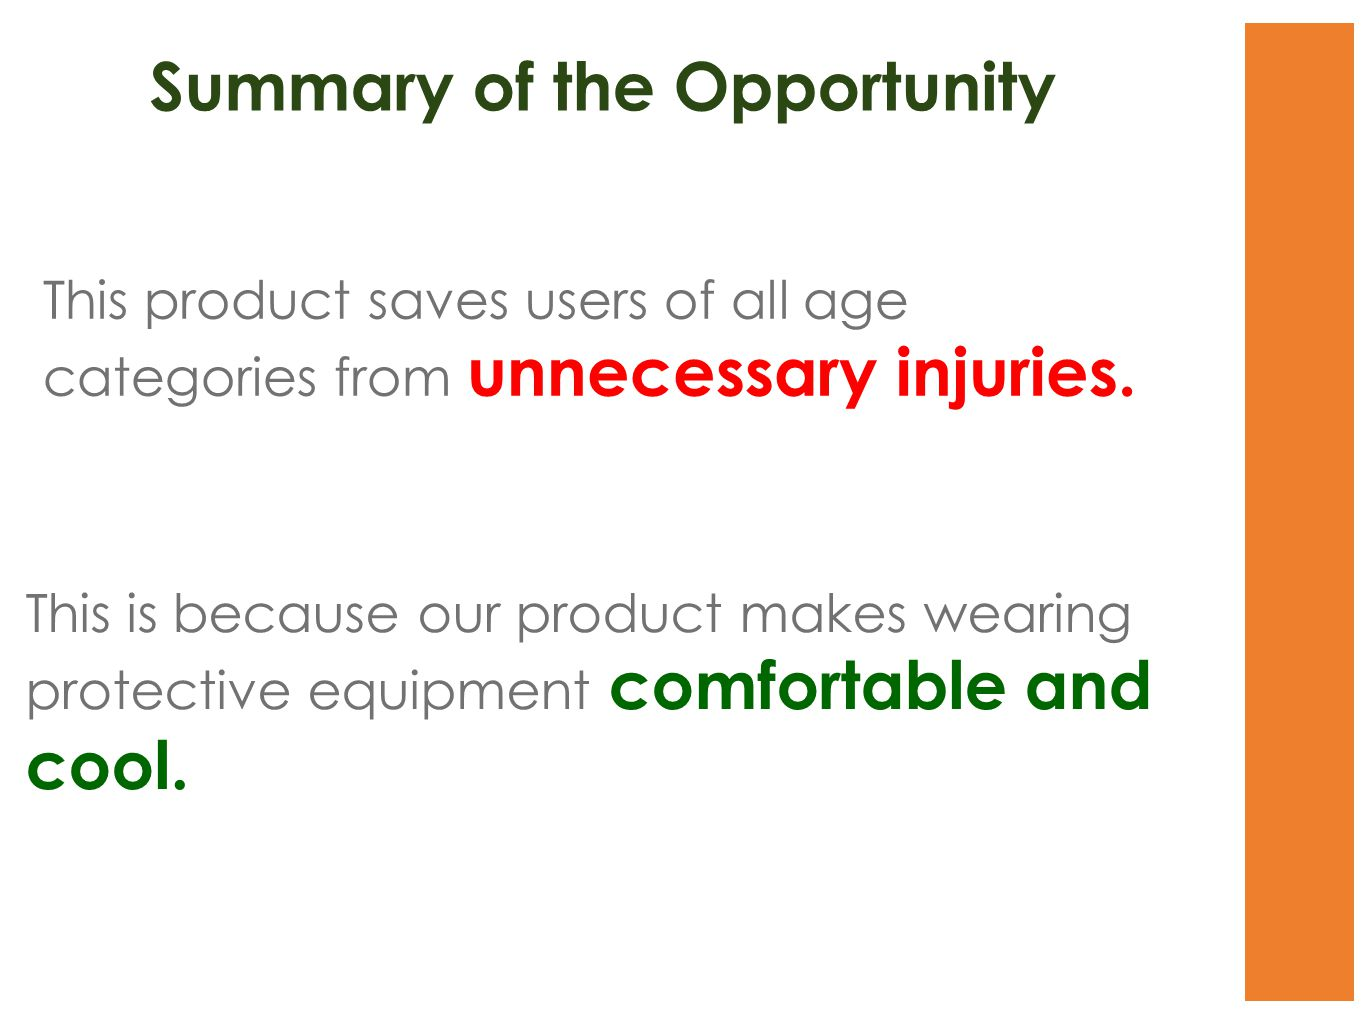 This product saves users of all age categories from unnecessary injuries.